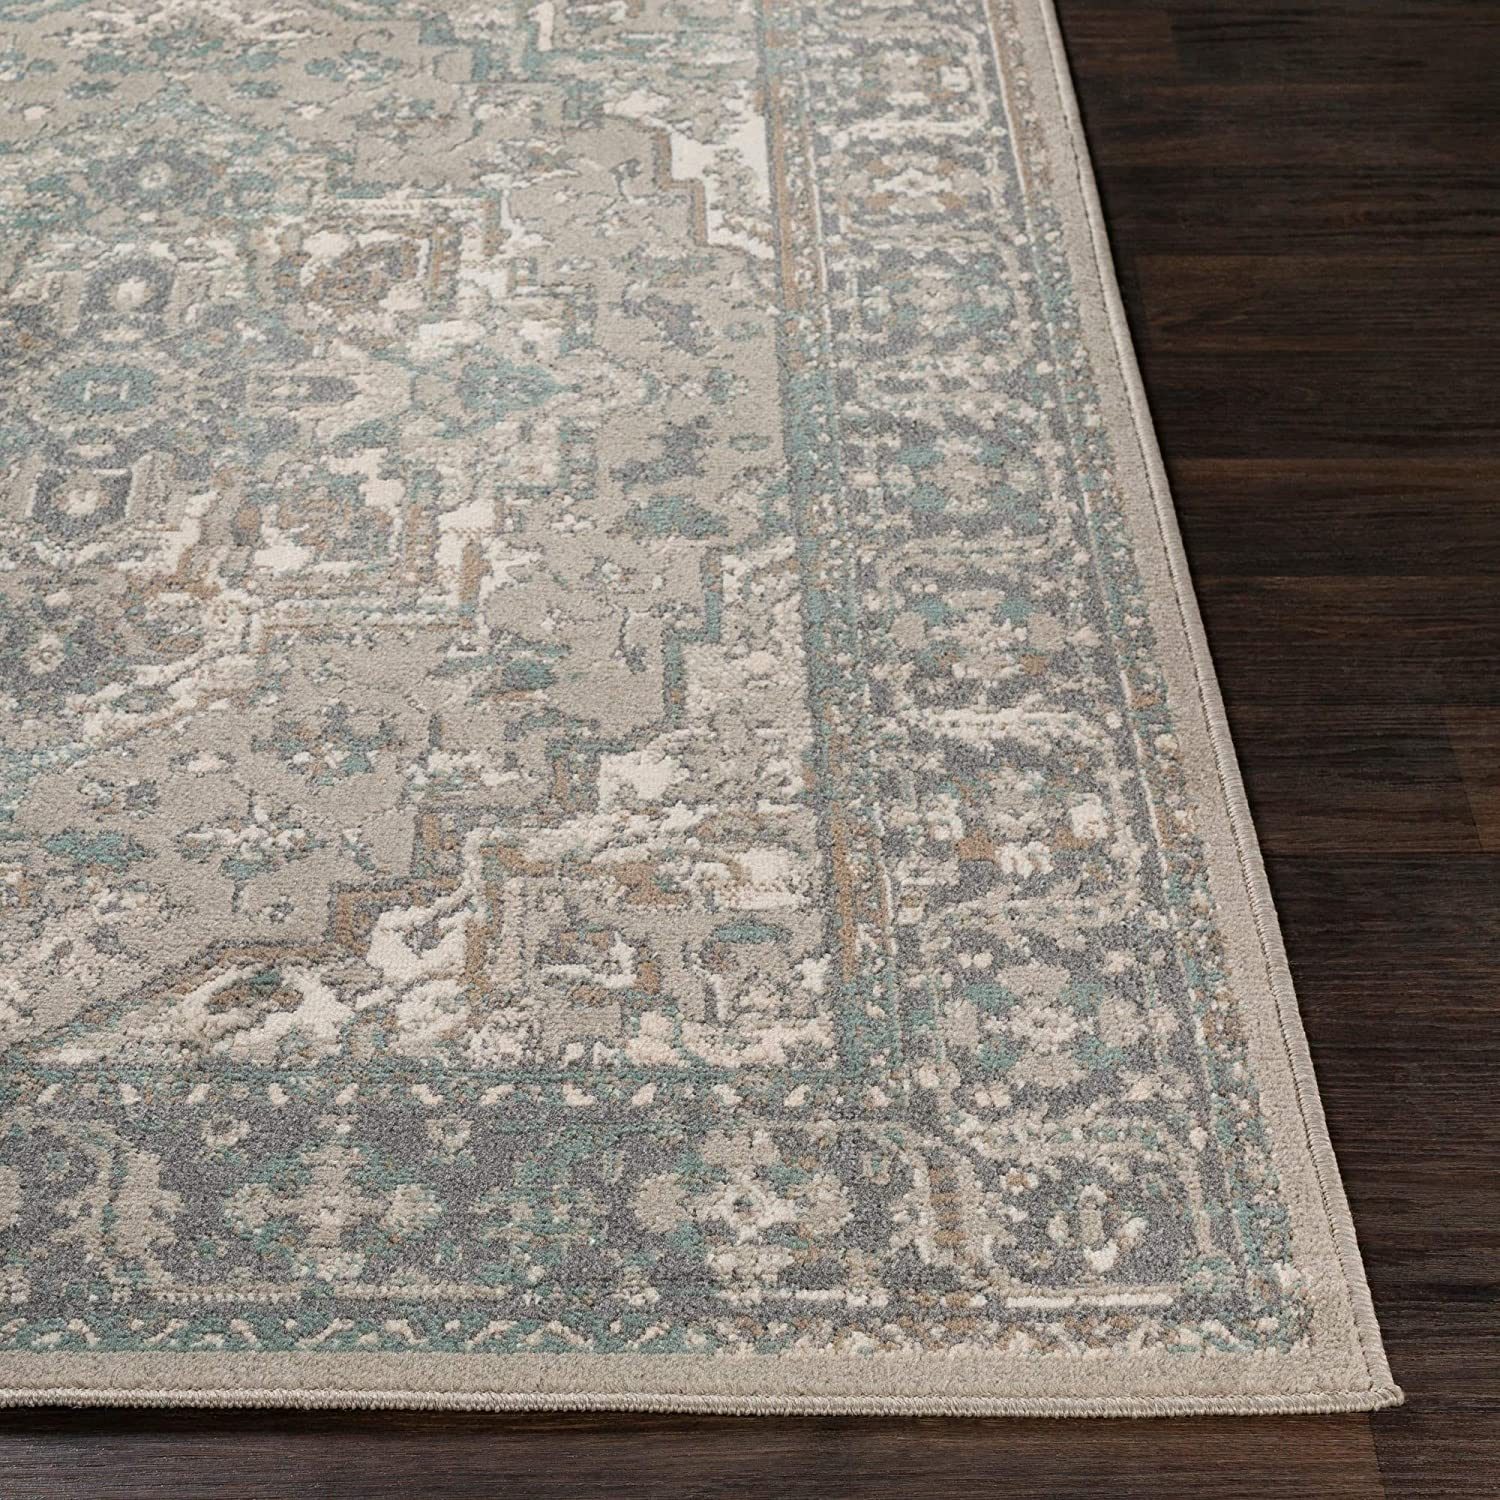 "MISC Charcoal/Beige Traditional Area Rug 7'10"" X 10'3"" Brown Grey Polypropylene Synthetic Latex Free Pet Friendly Stain Resistant"